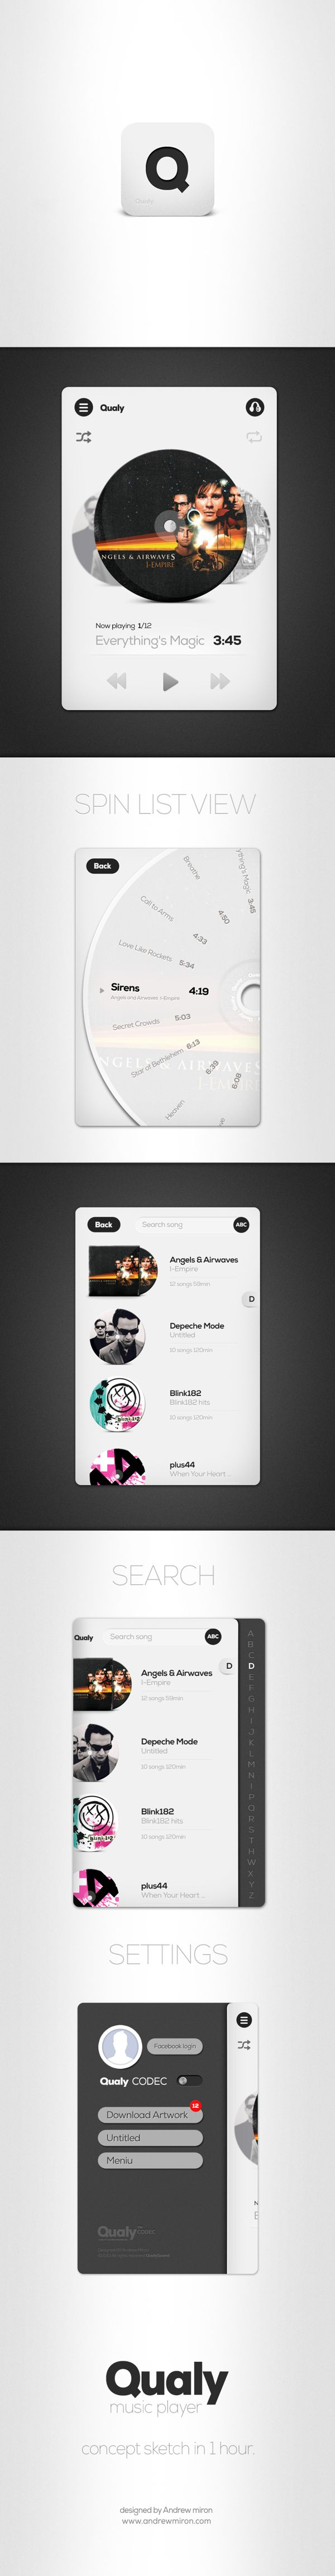 Qualy app. by Andrew Miron, via Behance